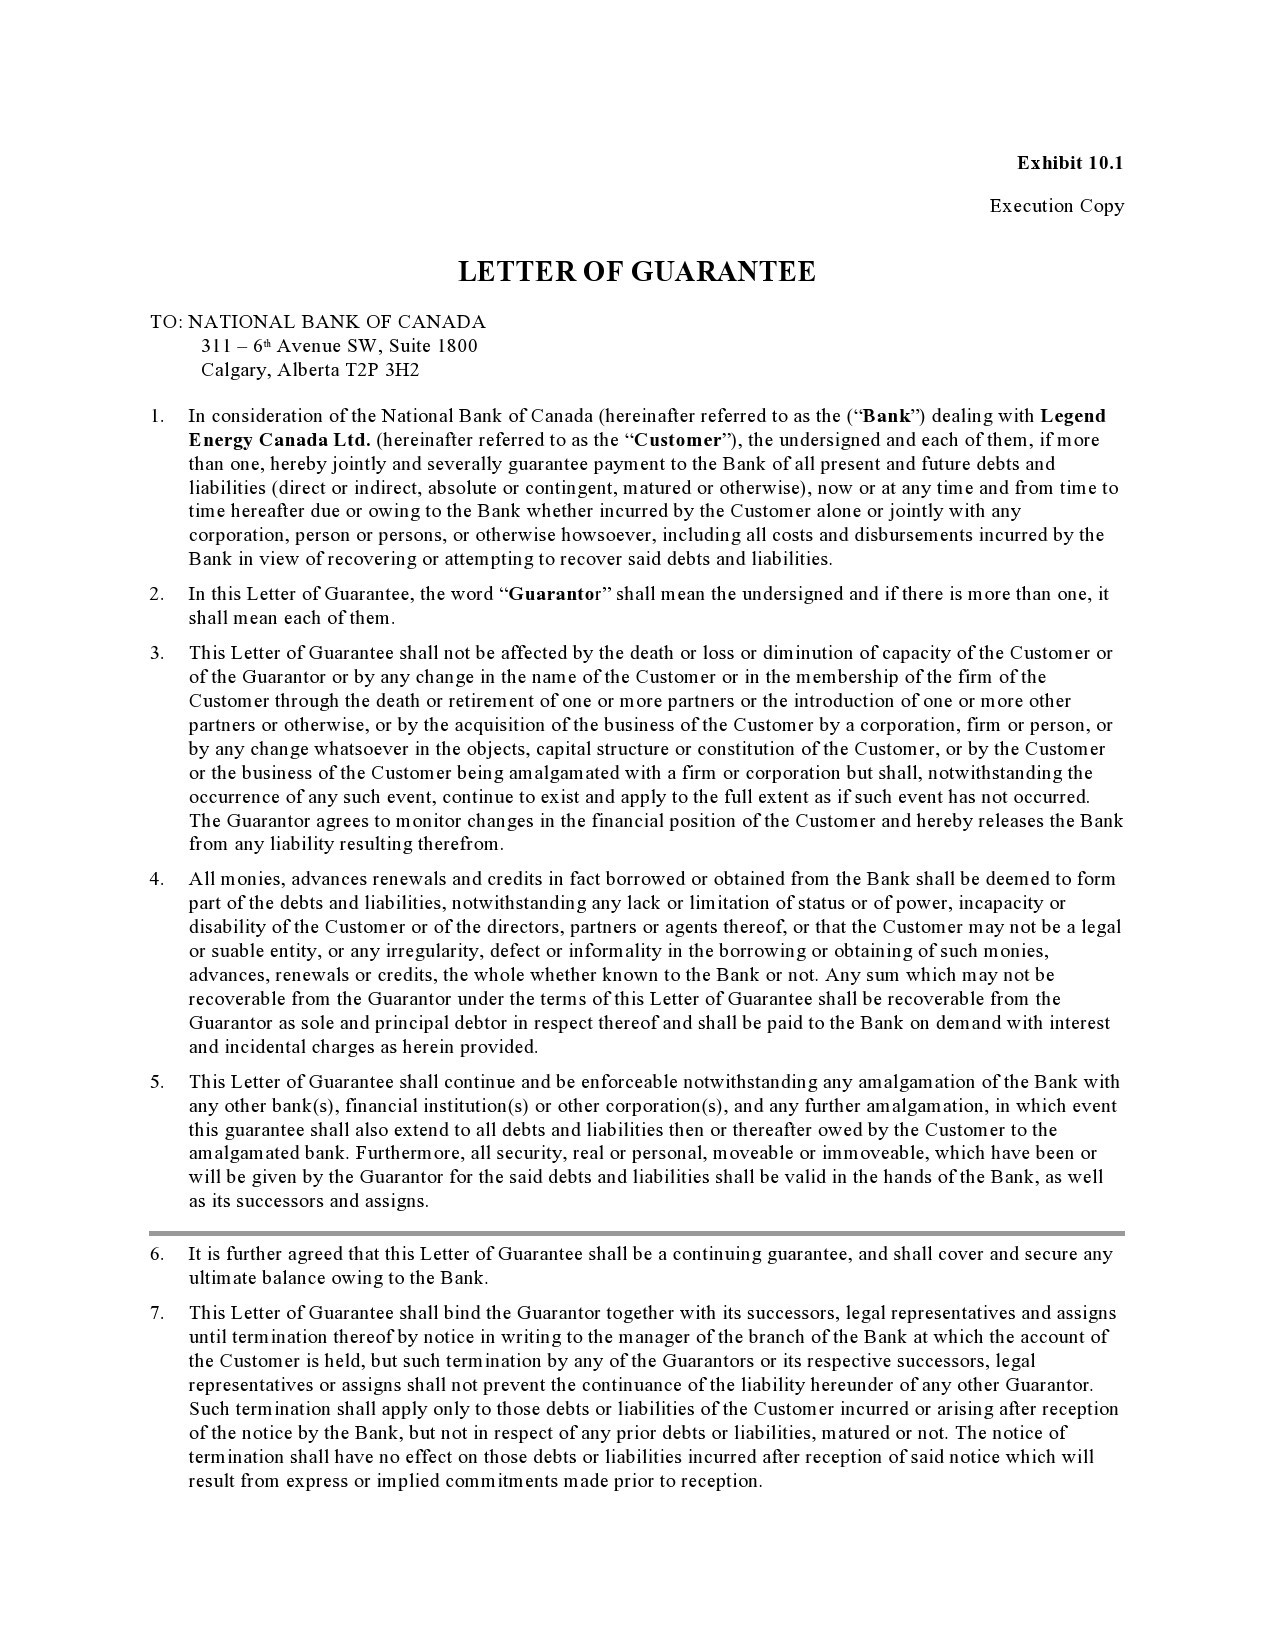 Free letter of guarantee 33